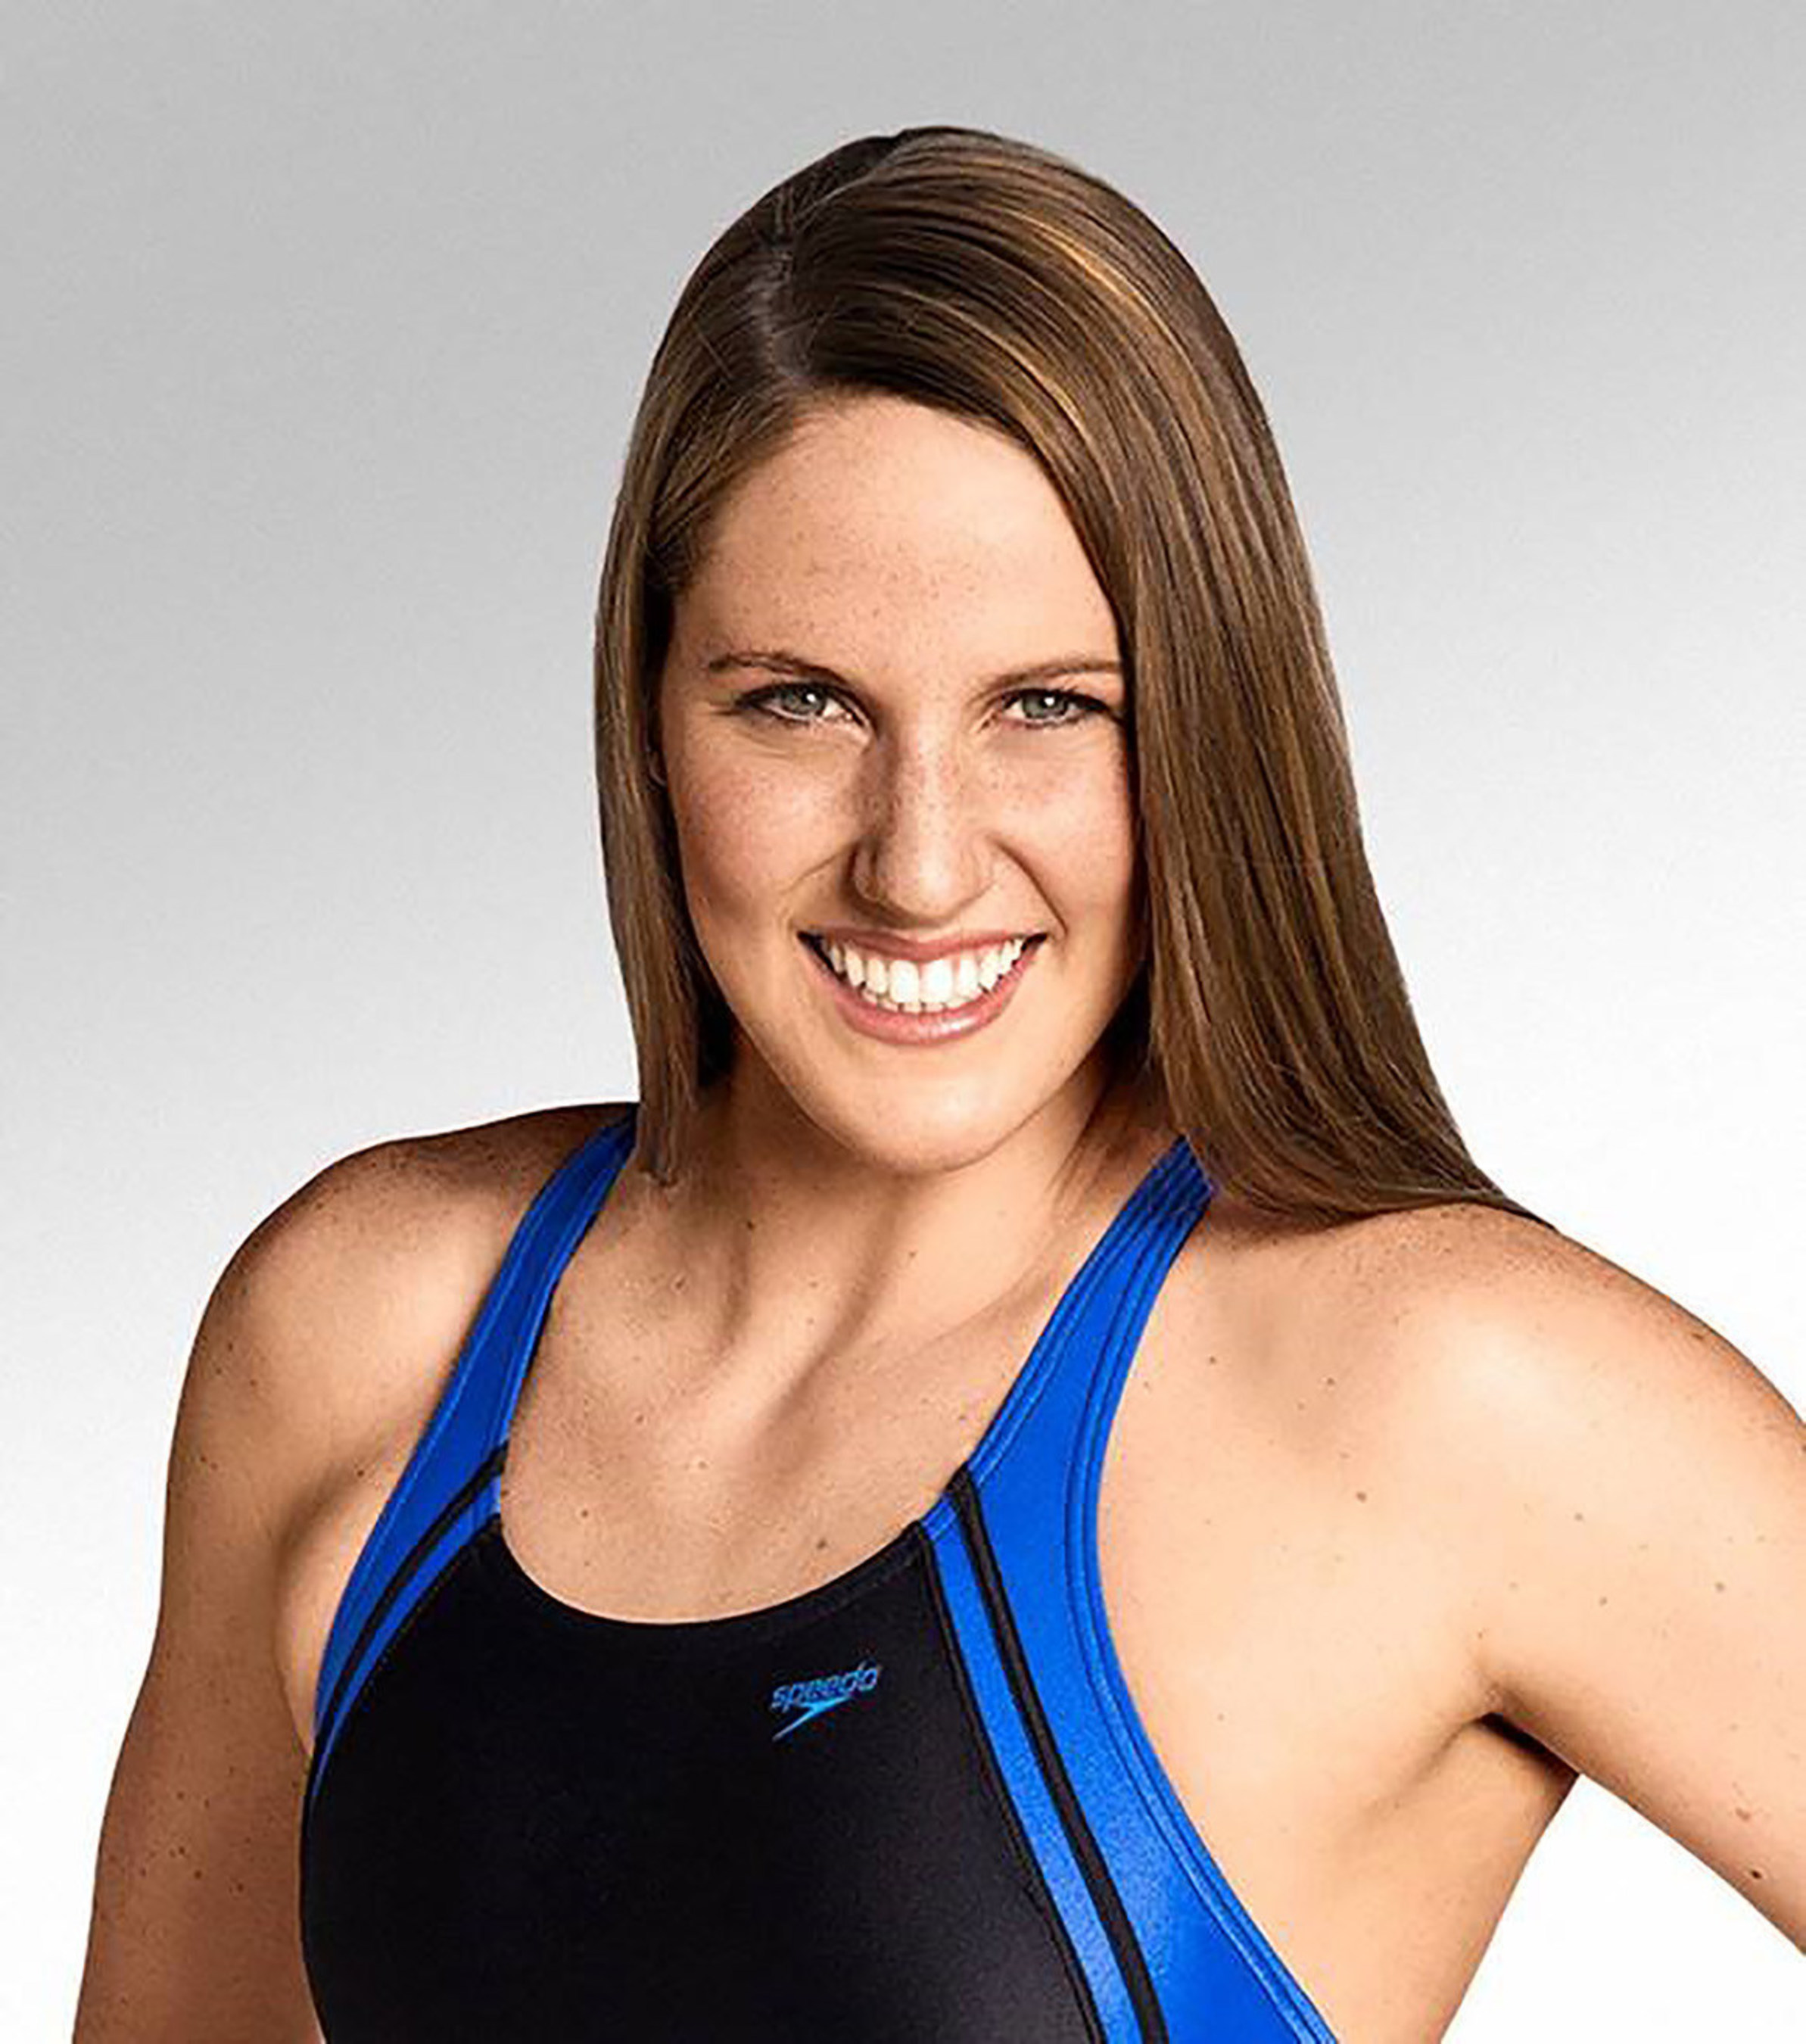 Missy Franklin, Olympic champion and professional swimmer, will partner with SafeSplash Swim Schools.